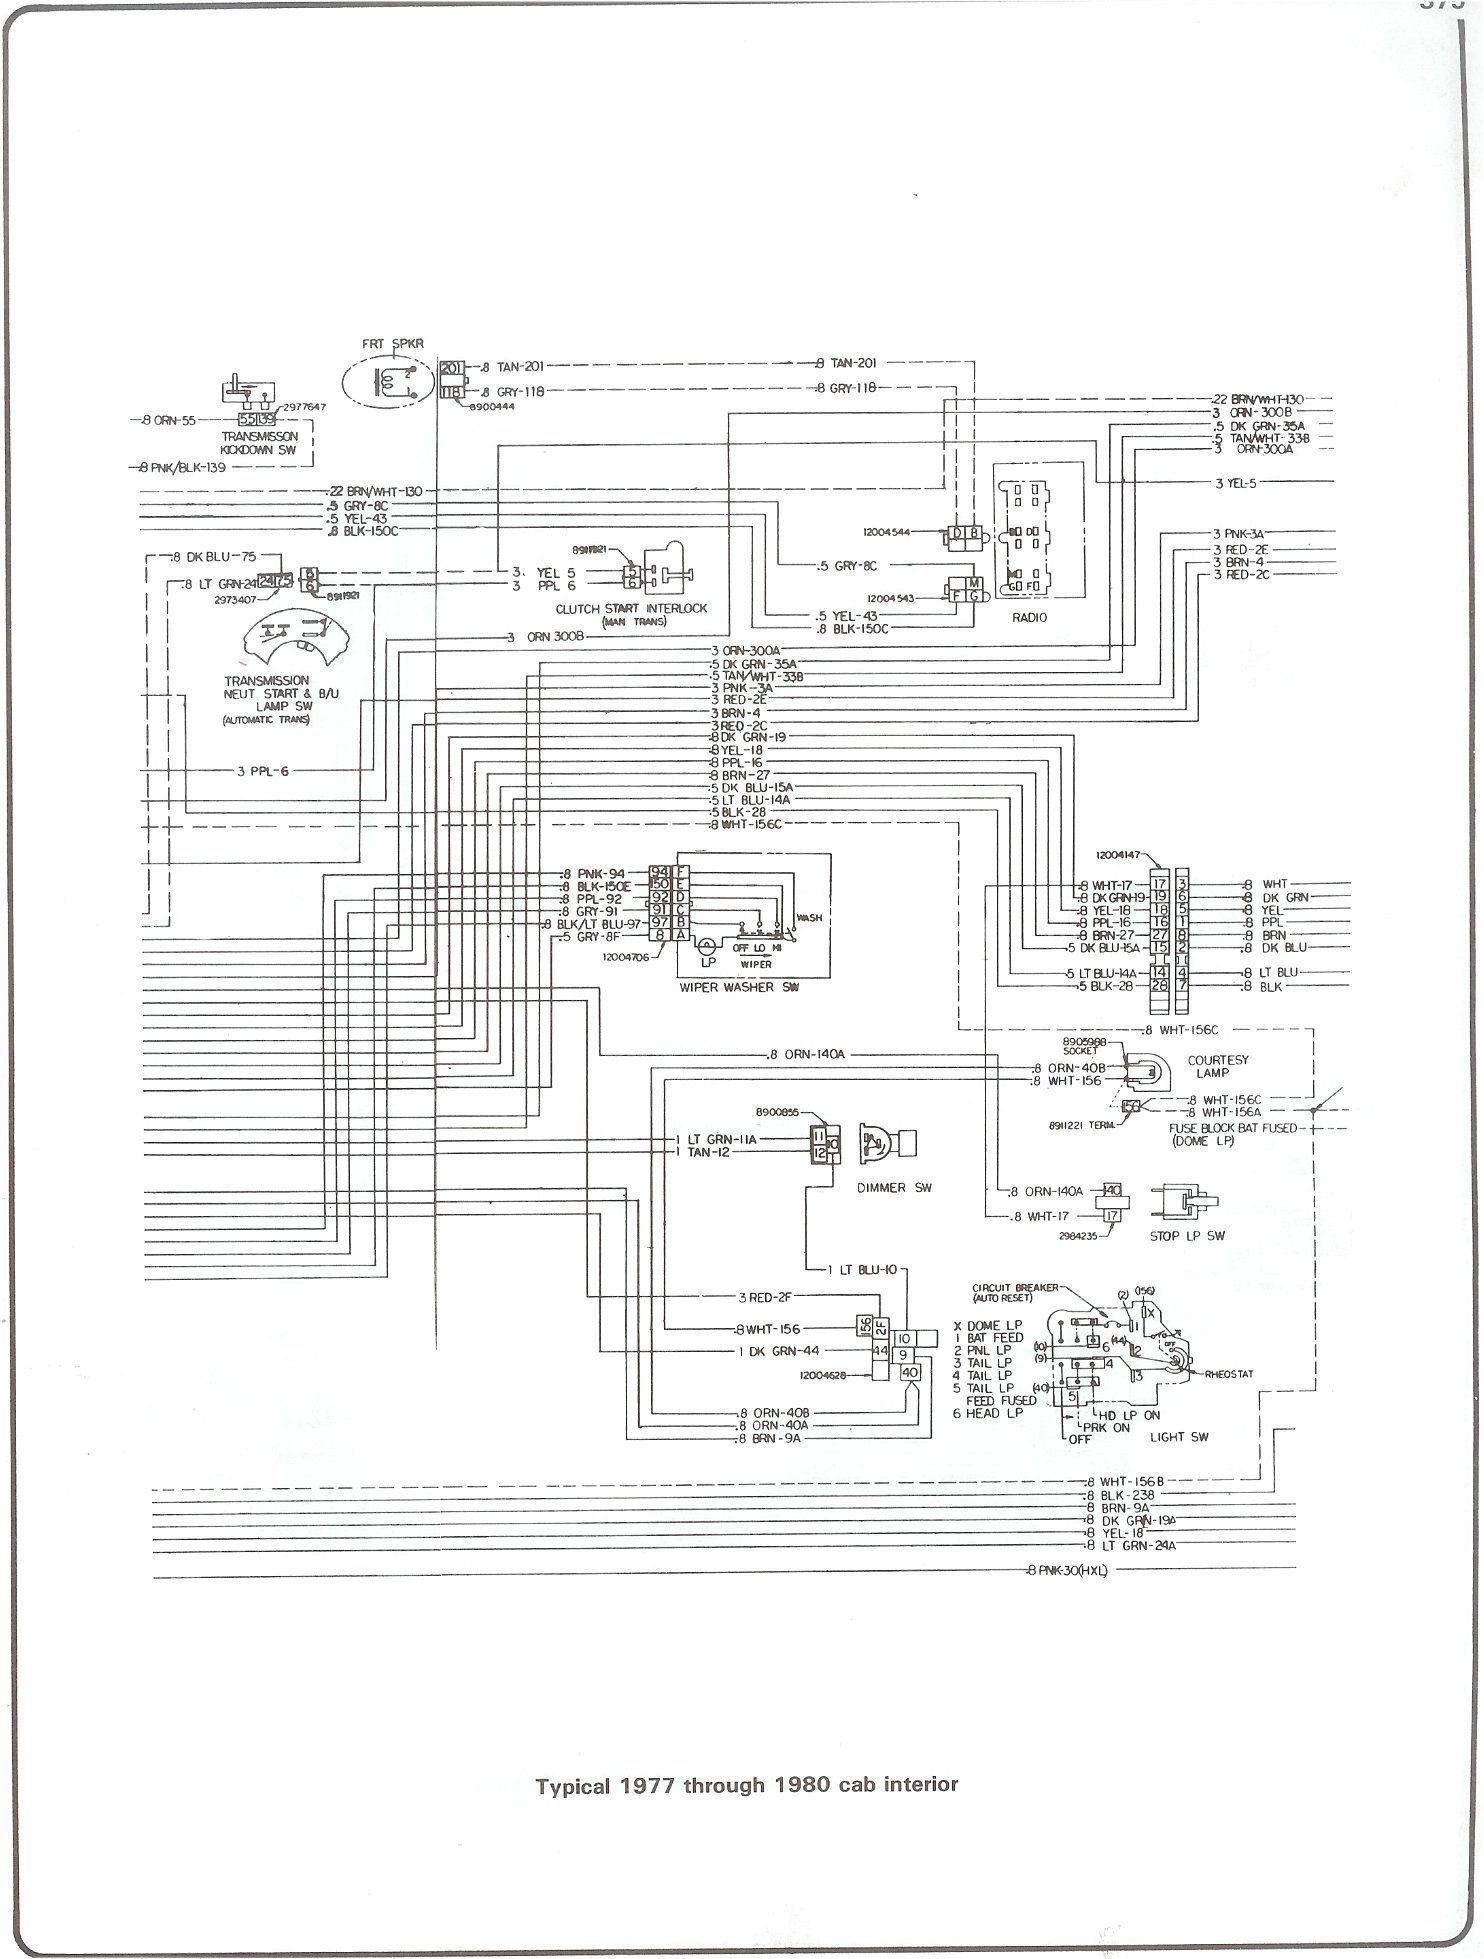 77 80_cab_inter complete 73 87 wiring diagrams gmc wiring harness diagram at n-0.co